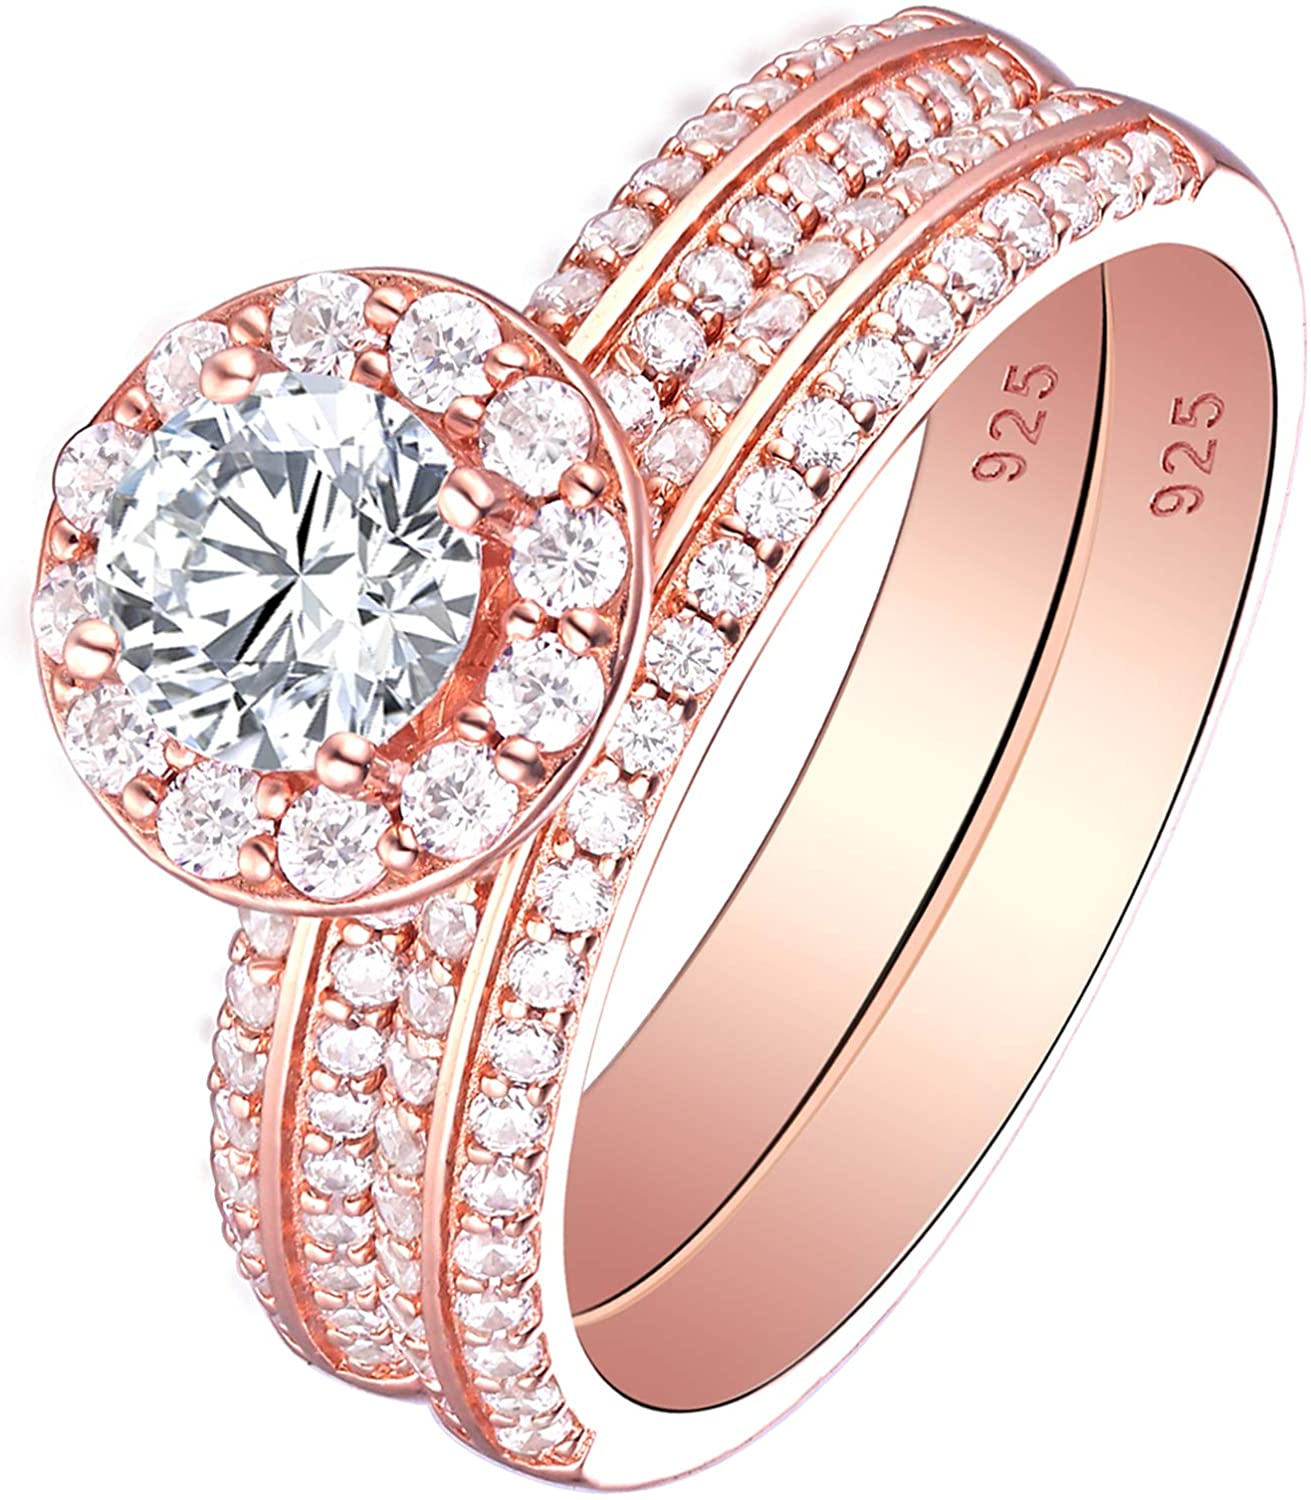 SHELOVES 18K Rose Gold Floral Wedding Rings Set for Women Halo Round Cut Cz Sterling Silver Sz 5-10